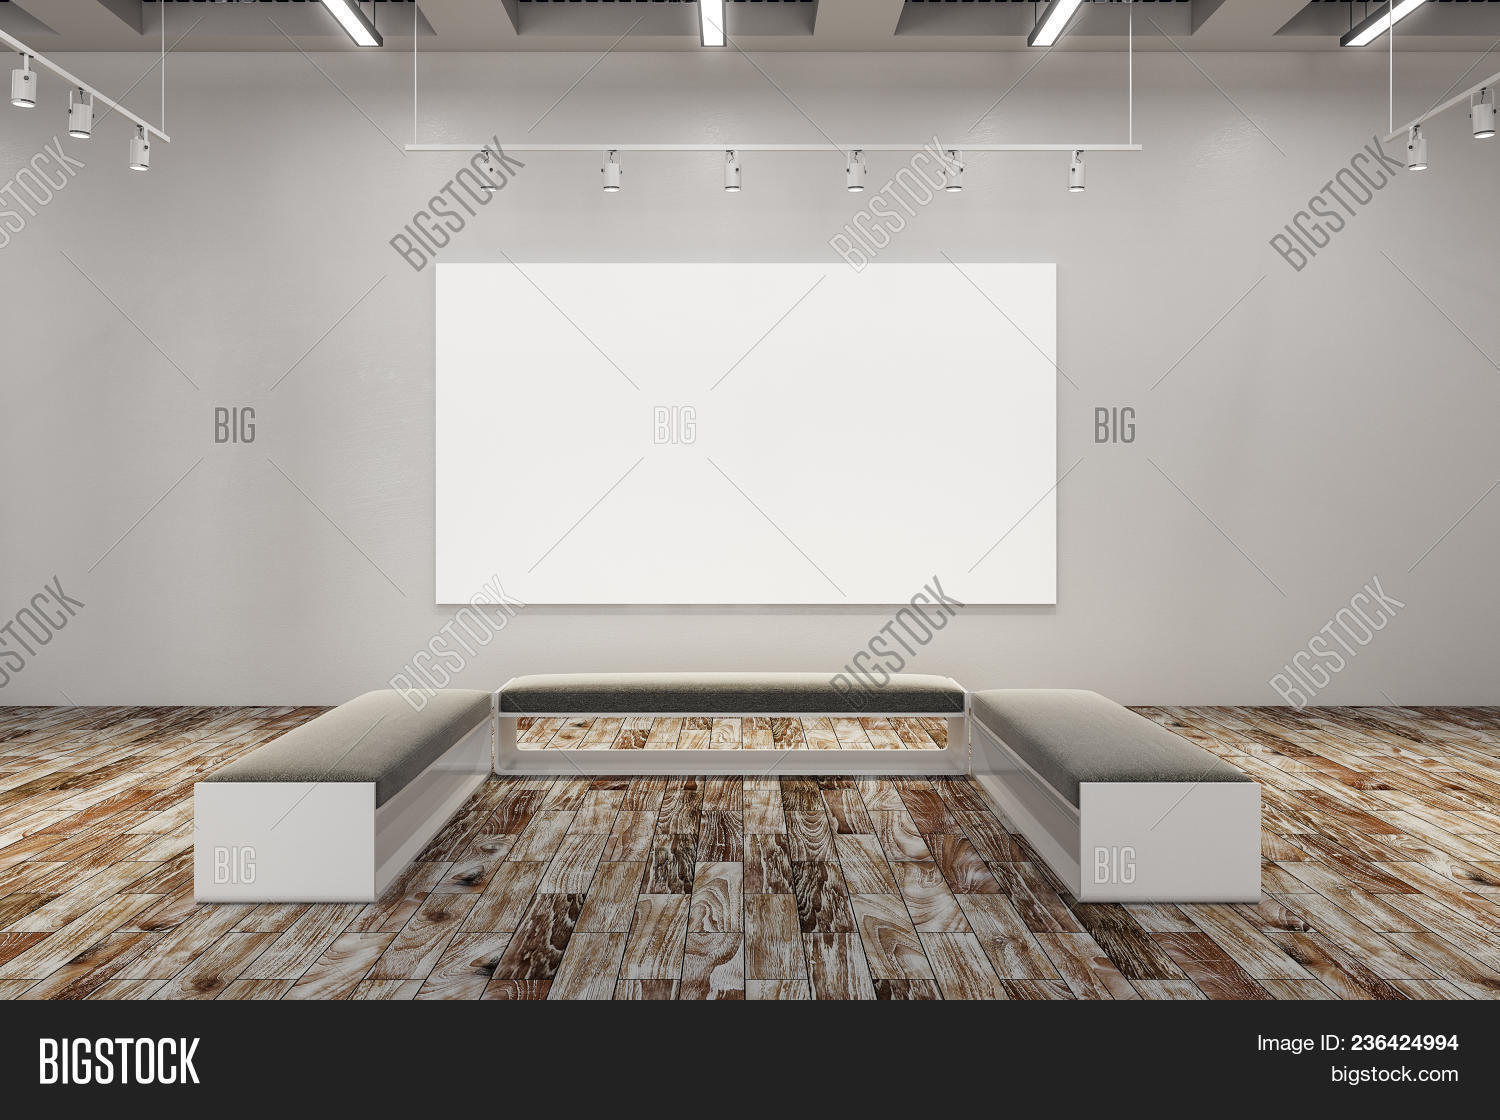 🔥 Clean Exhibition Hall With Empty Billboard And Bench  Gallery